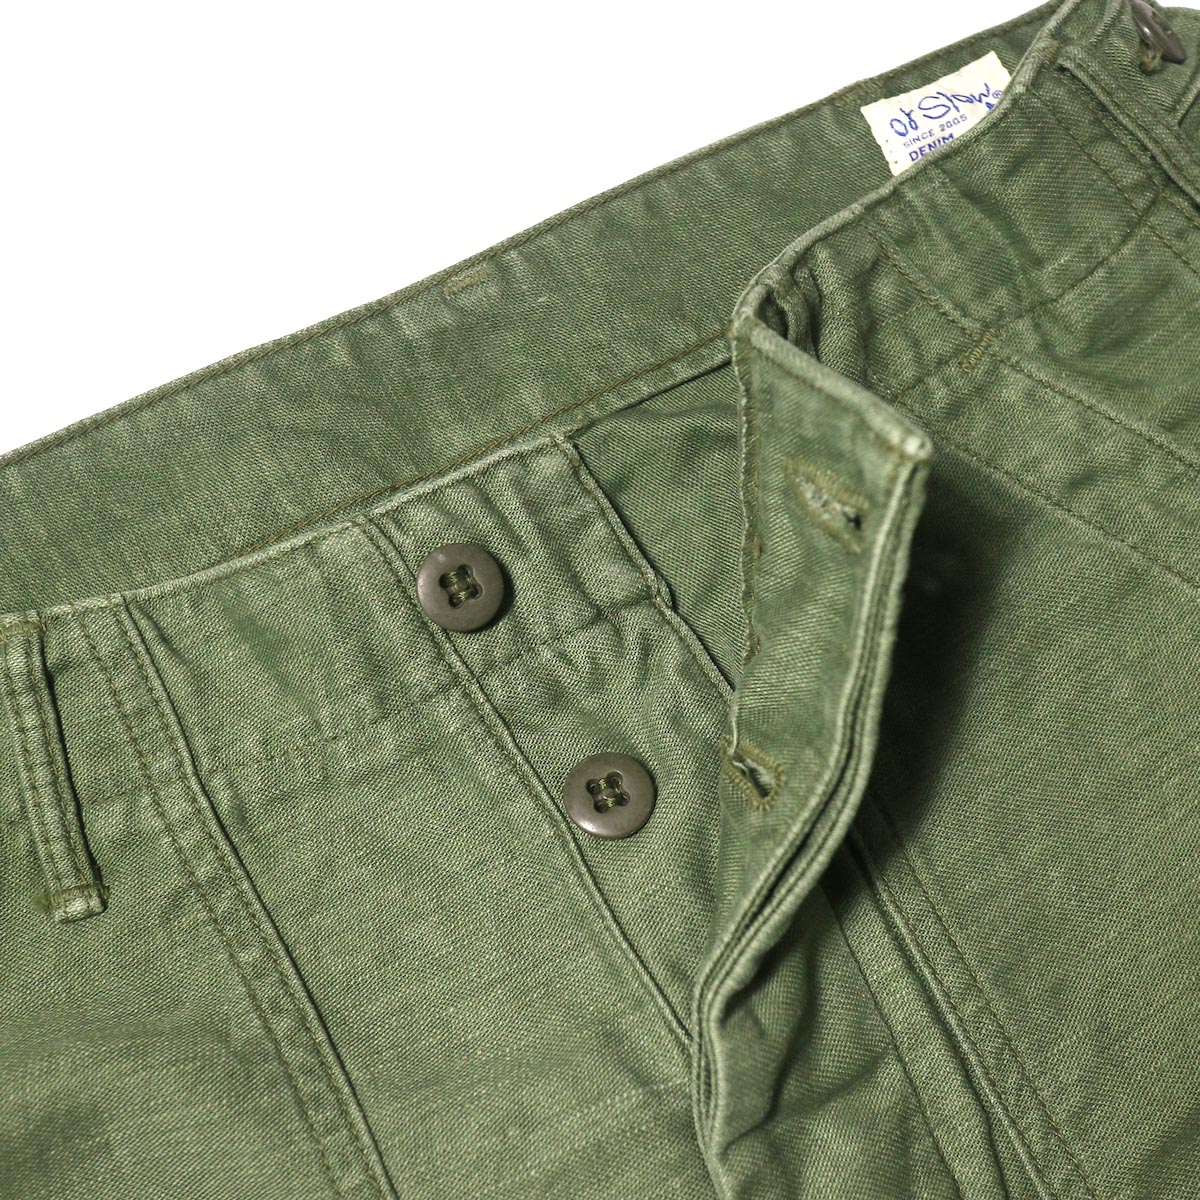 orSlow / US ARMY FATIGUE PANTS (Used Green)ボタンフライ